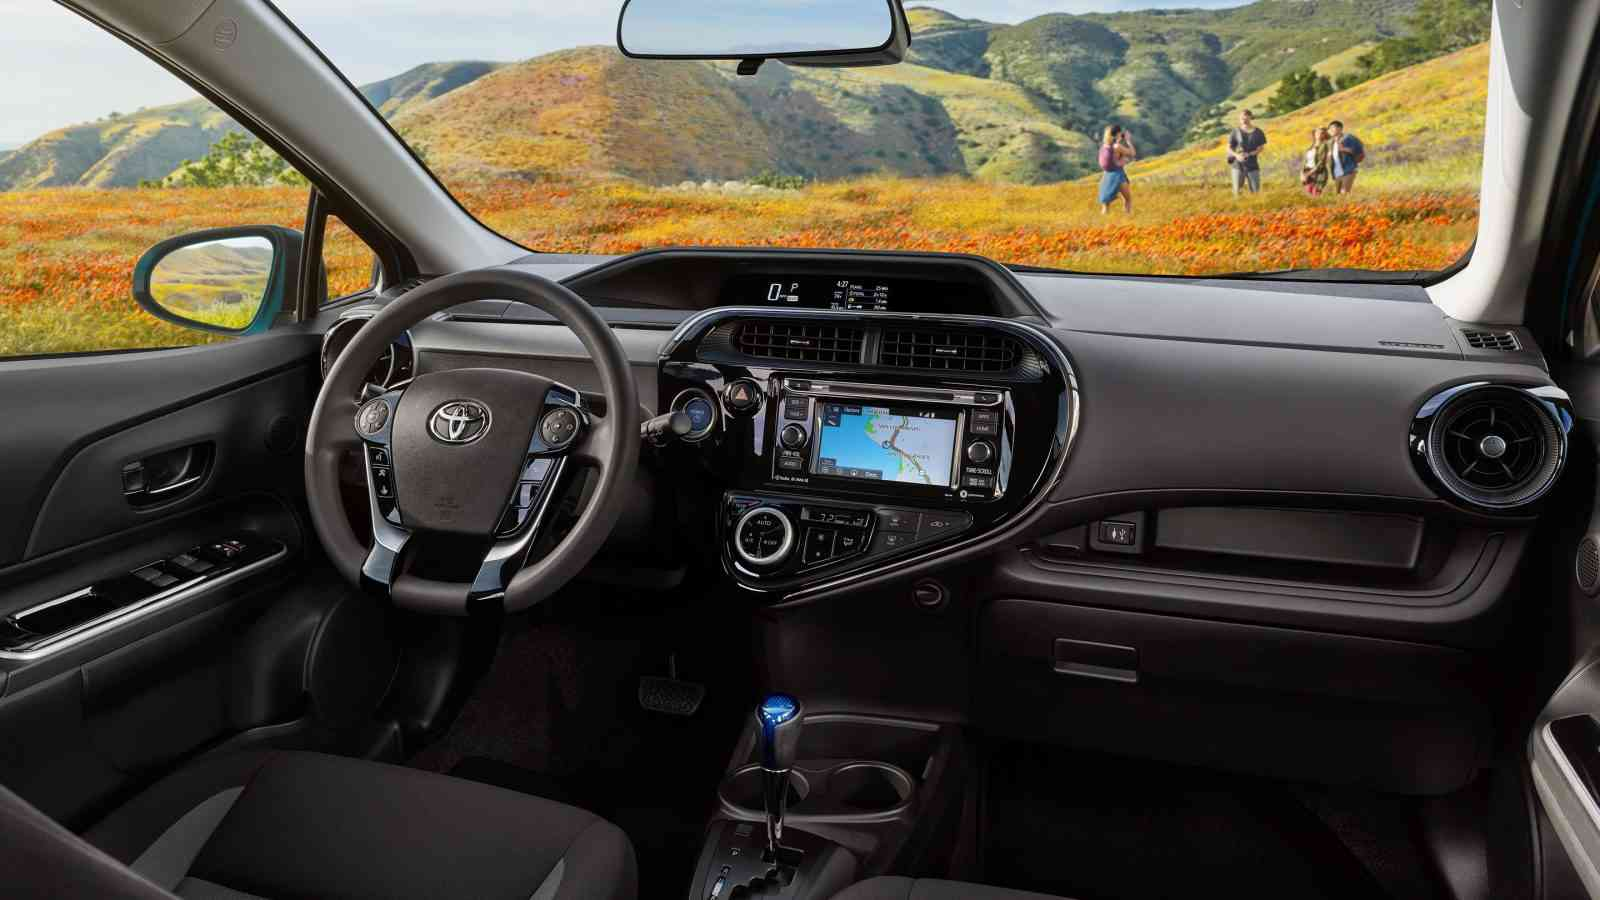 Toyota Prius C Review that needs your attention